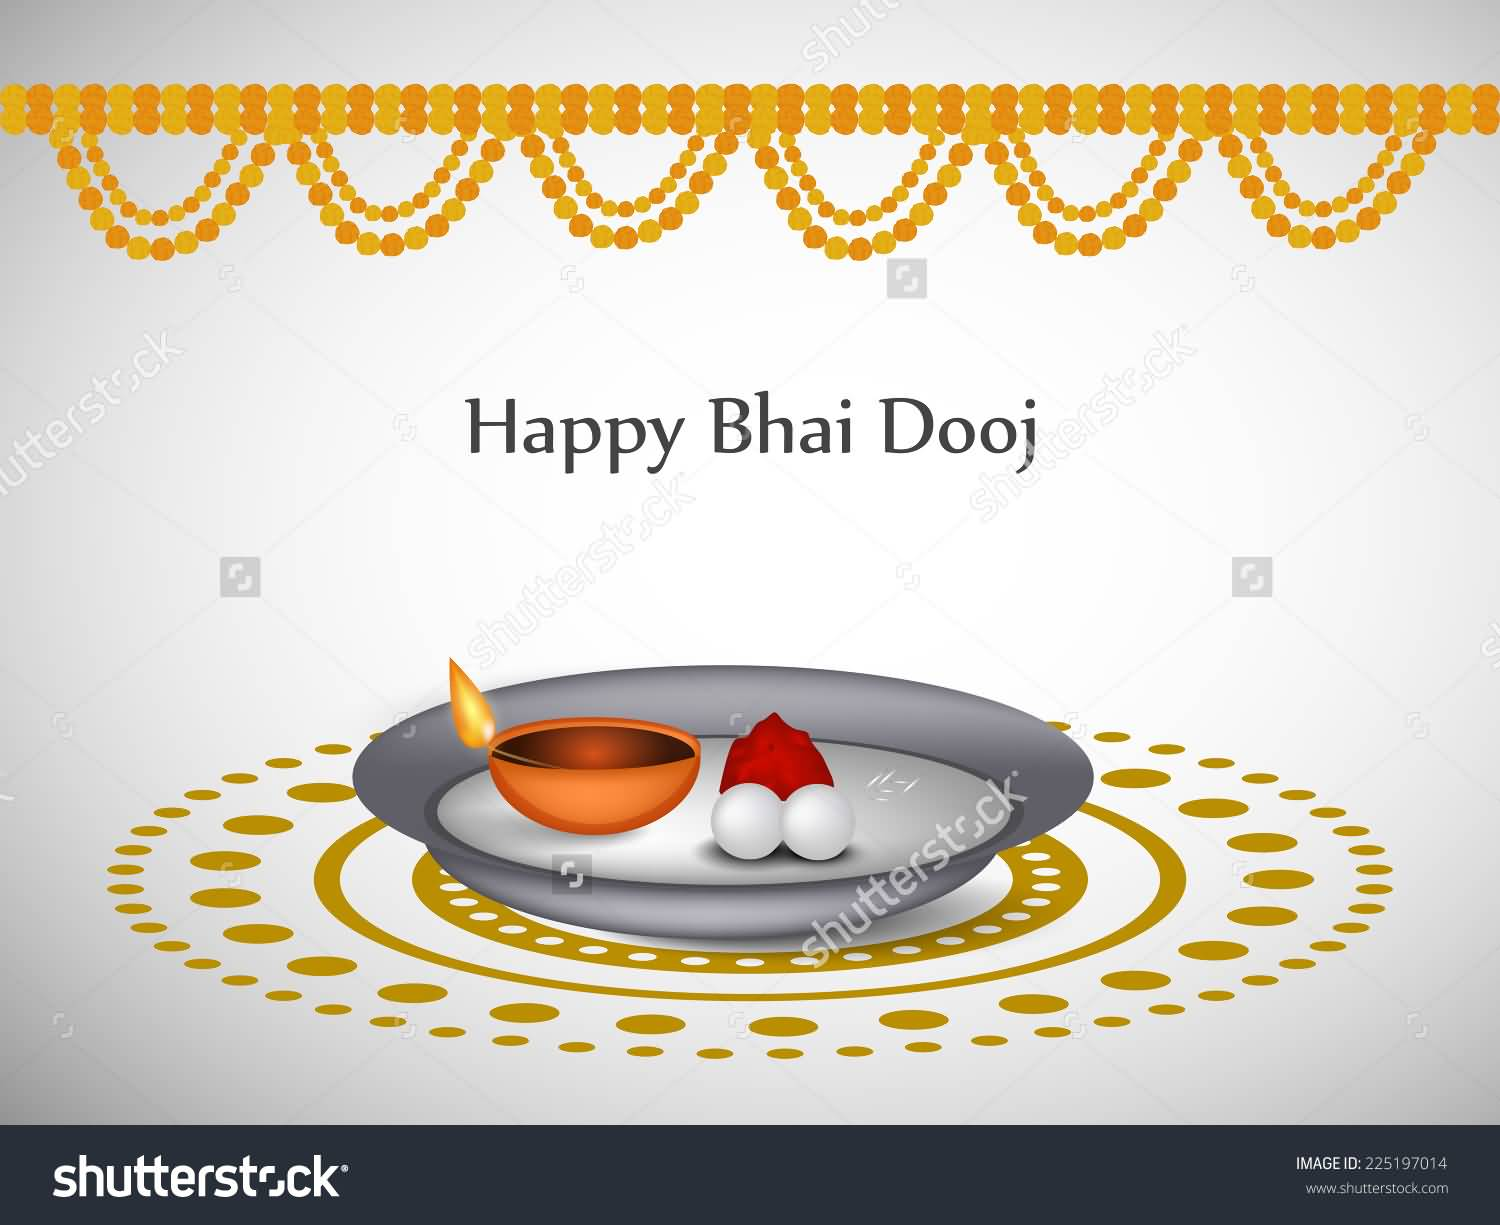 38 Best Bhai Dooj Greeting Card Pictures And Photos